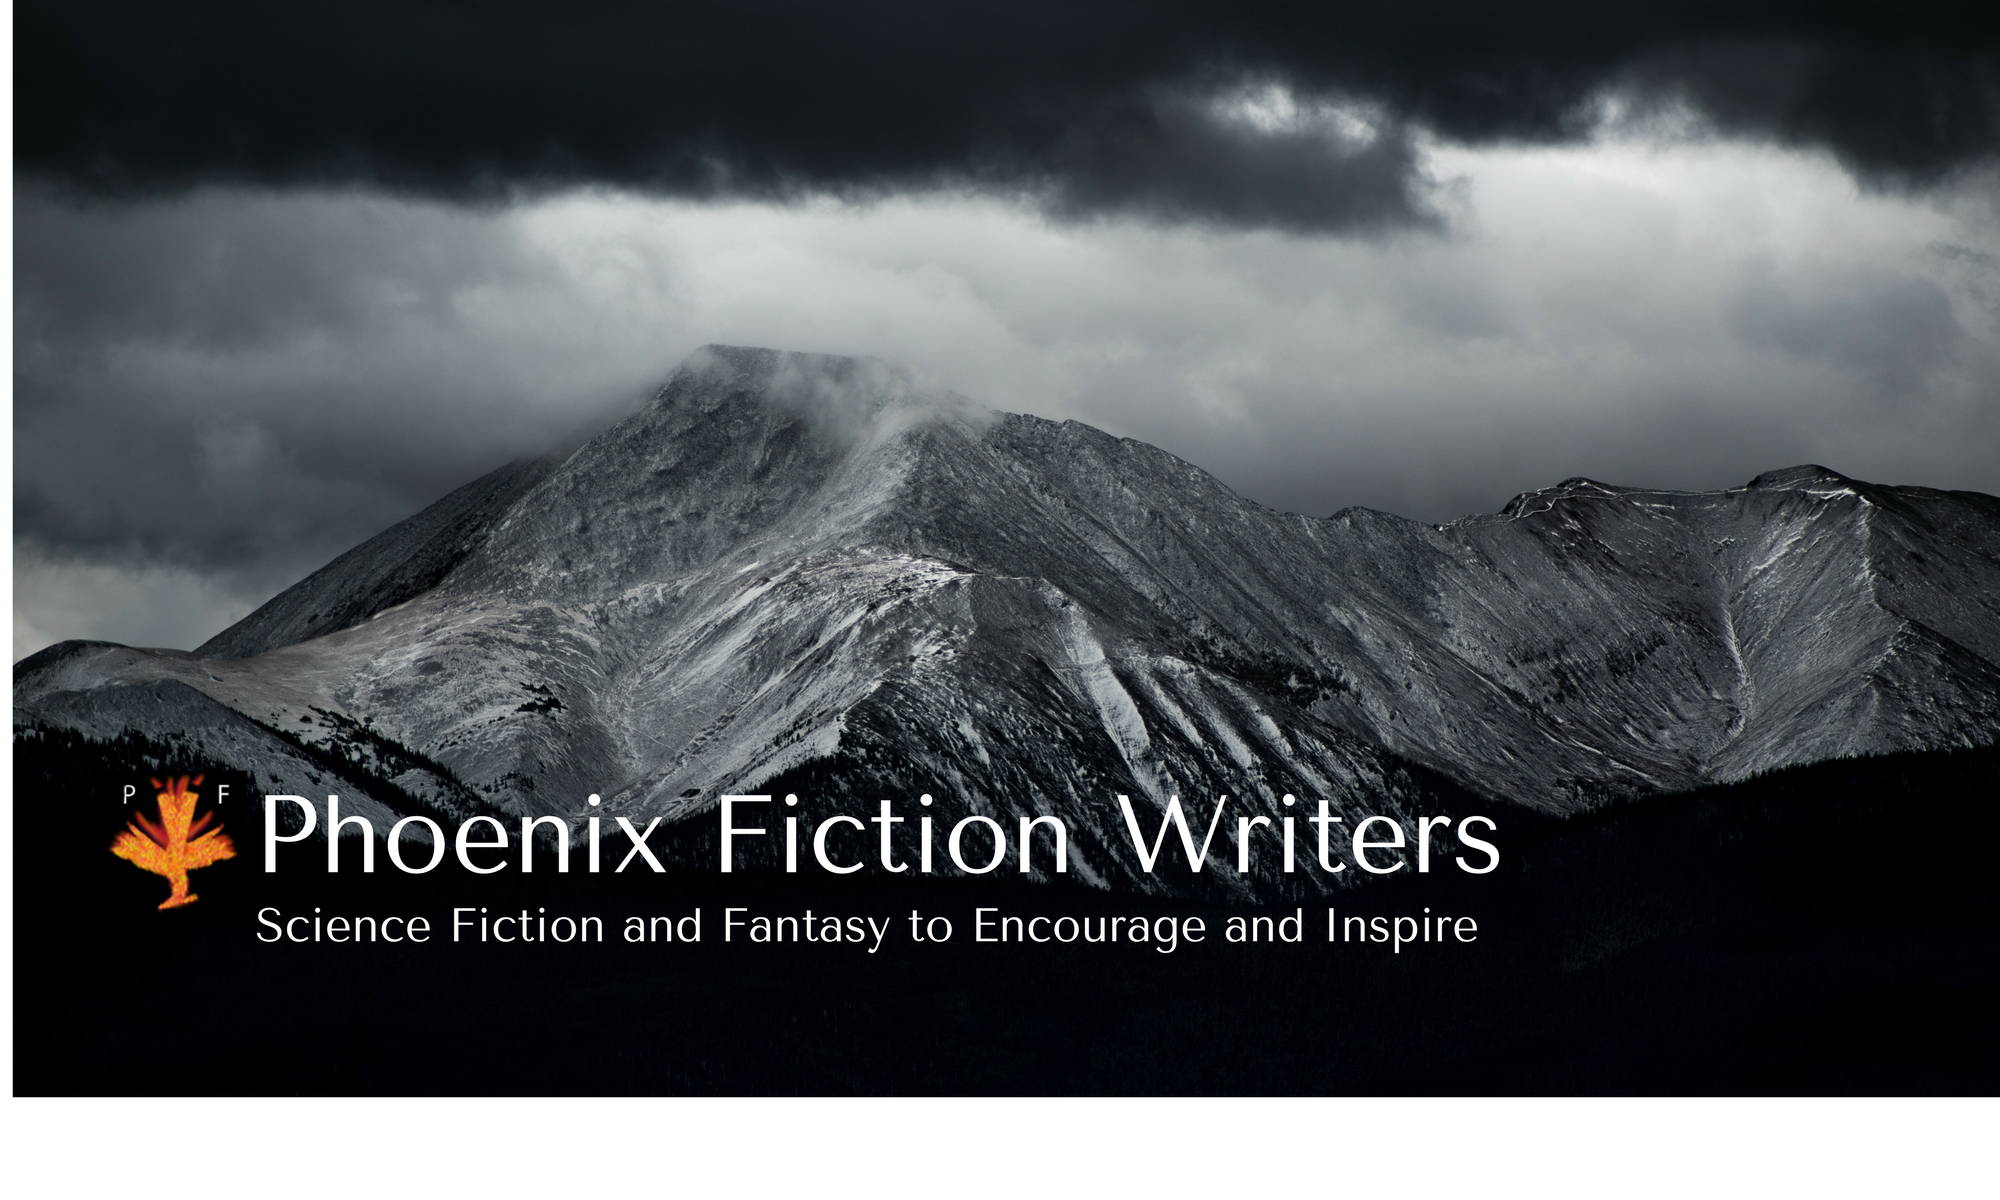 Phoenix Fiction Writers